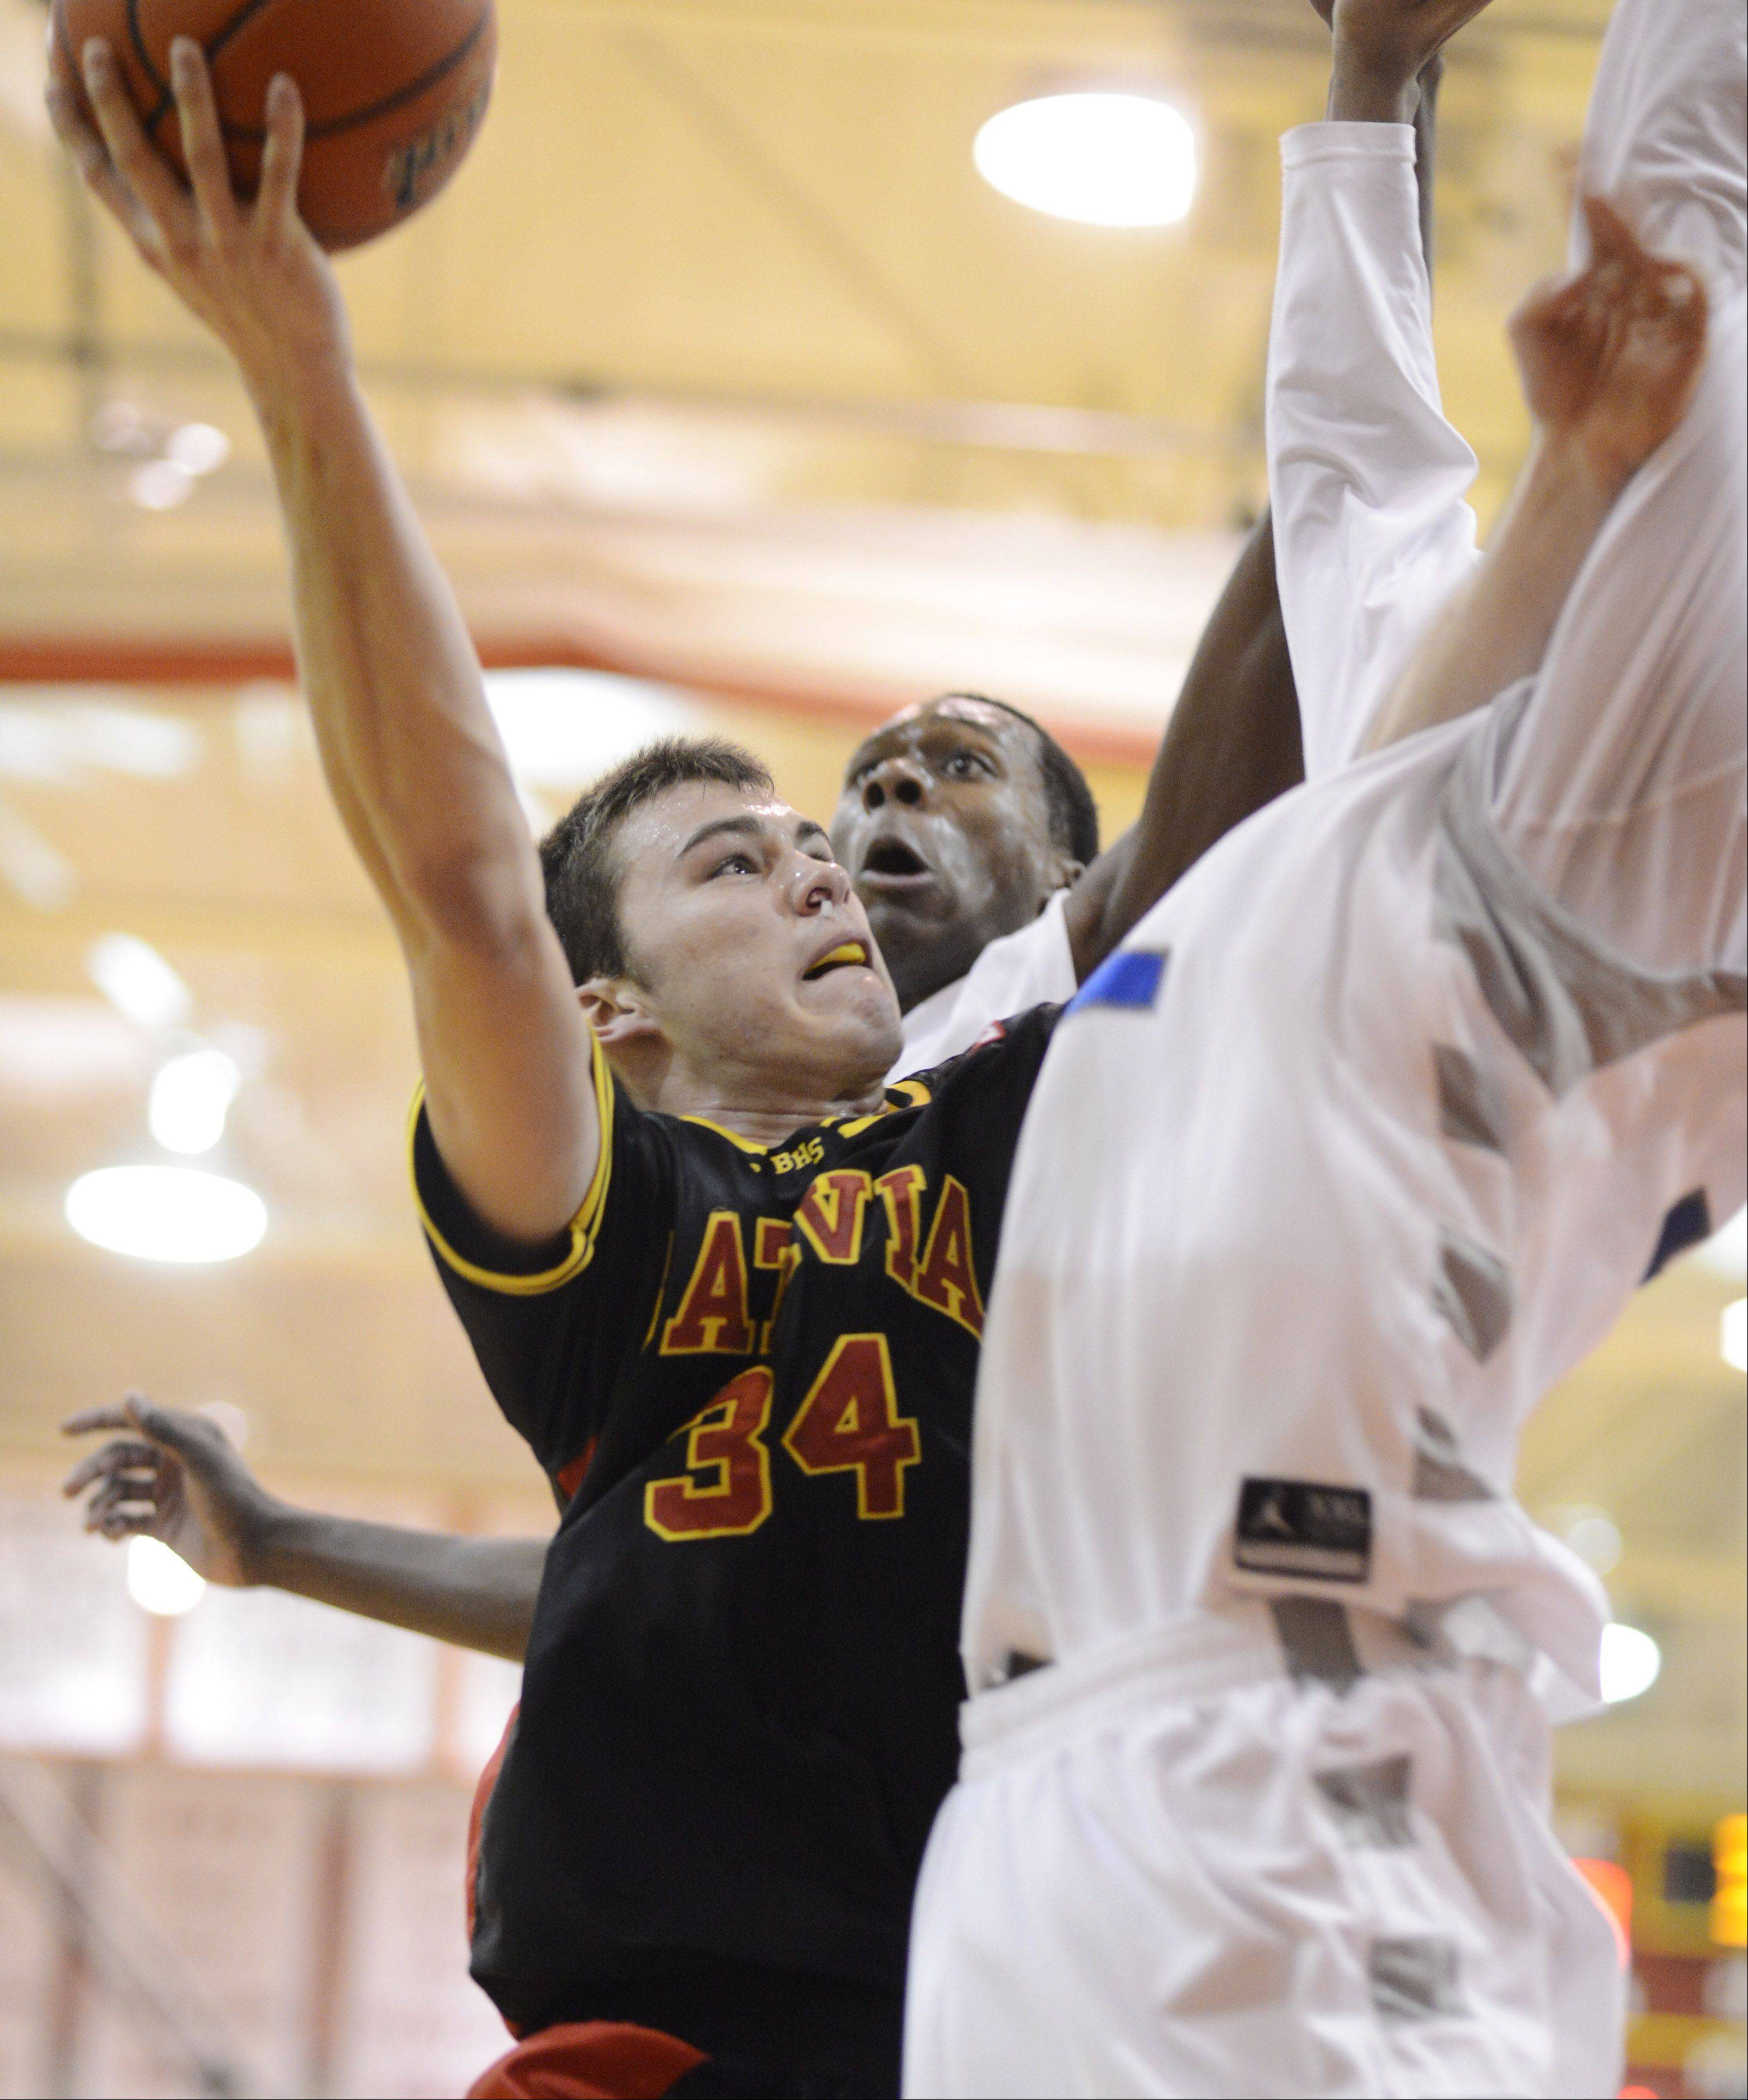 Batavia's Zach Strittmatter takes a shot against De La Salle during the 20th anniversary Night of Hoops at Batavia High School on Saturday.